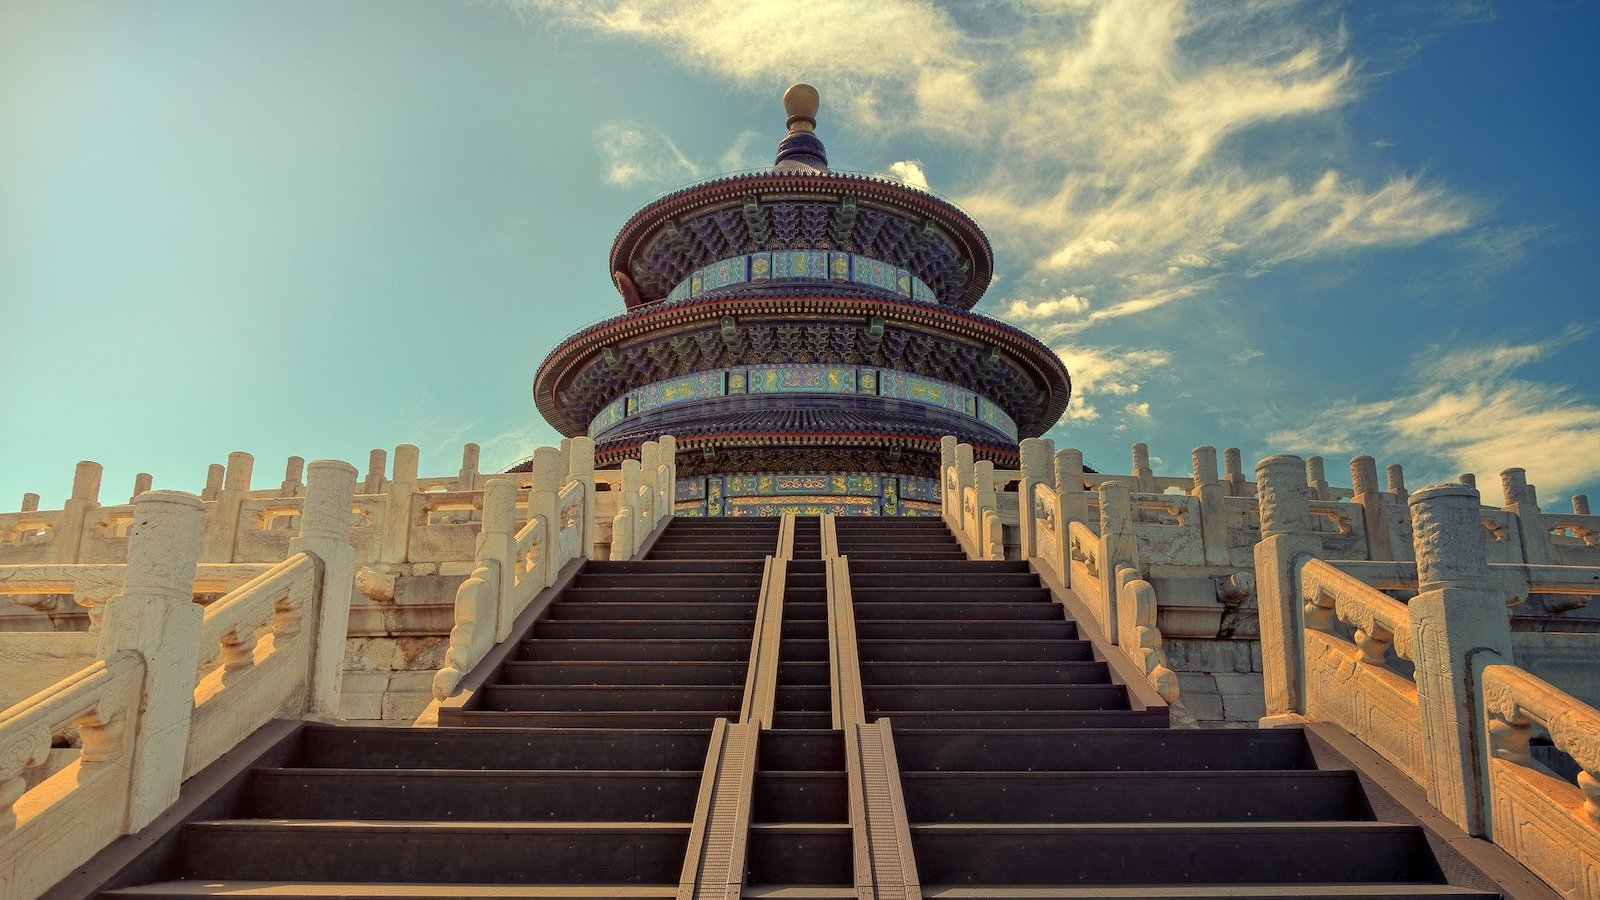 China's Temple of Heaven